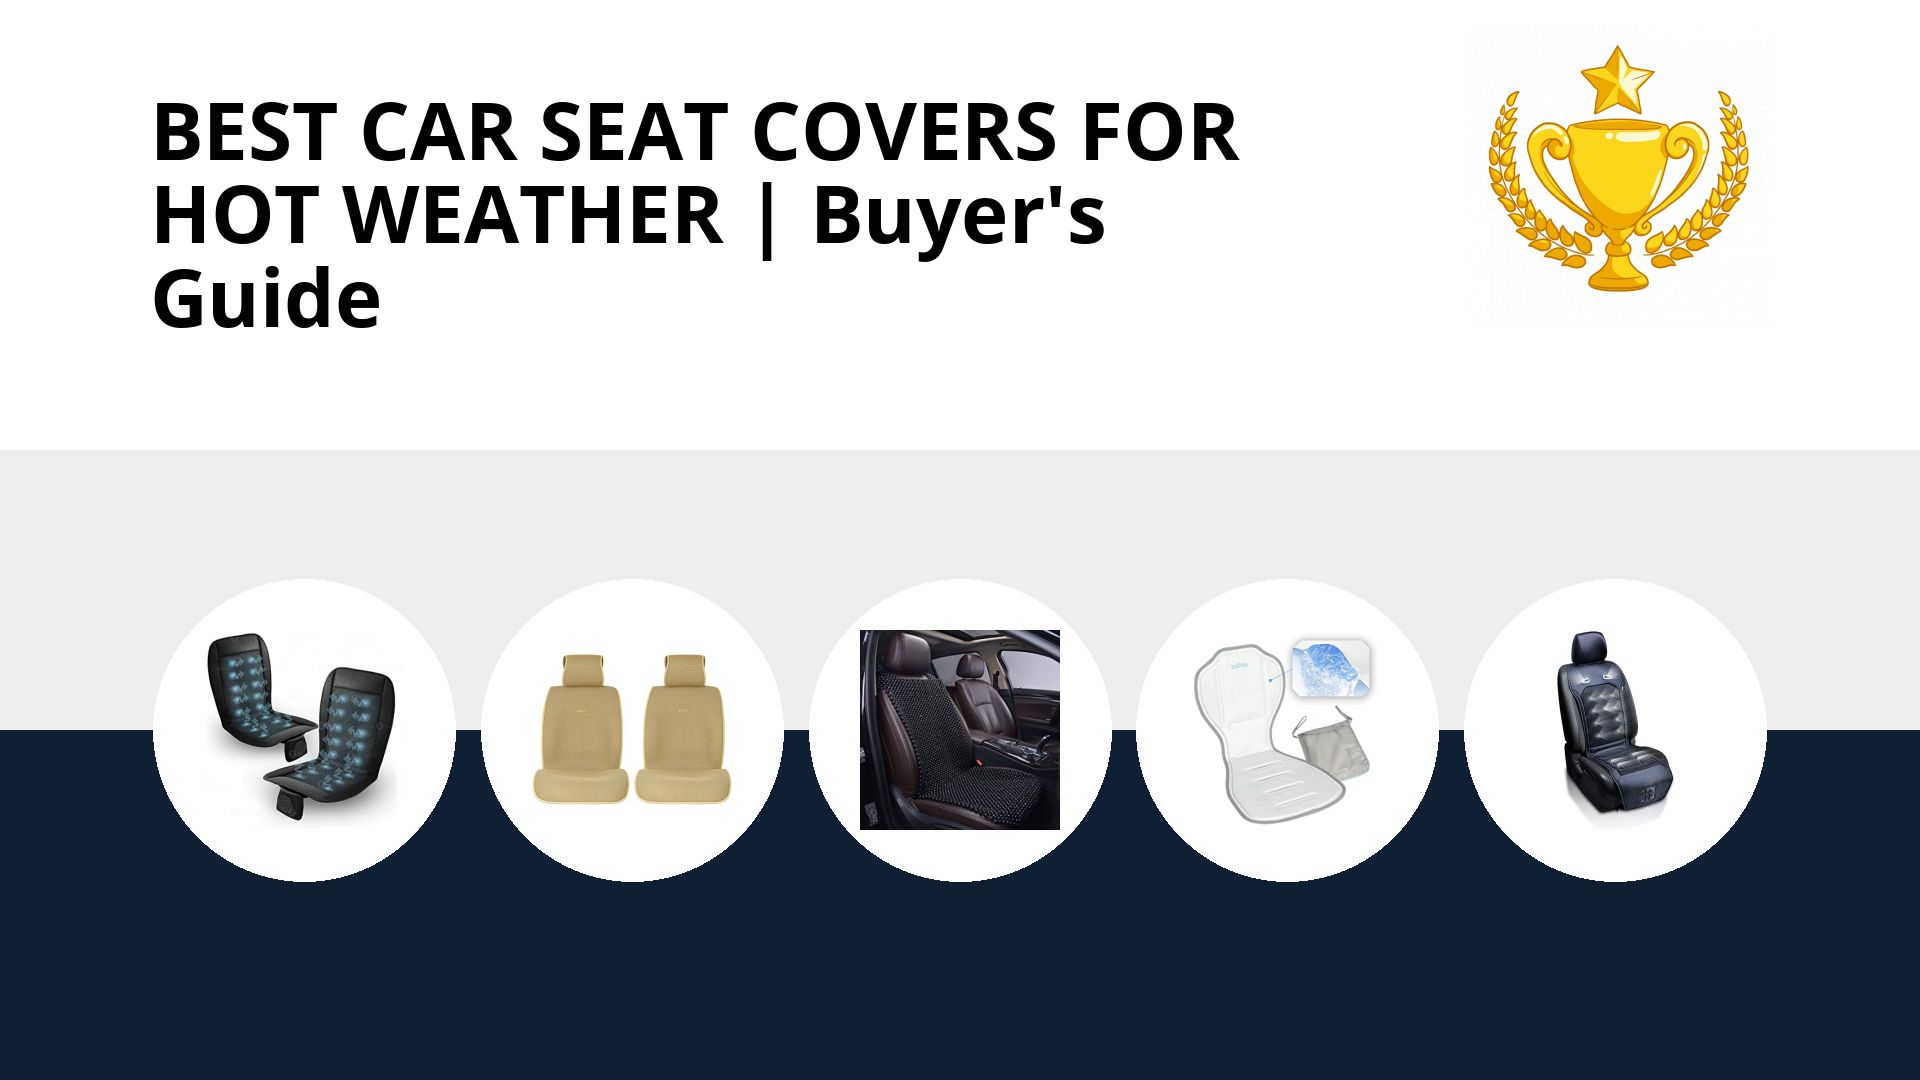 Best Car Seat Covers For Hot Weather: image